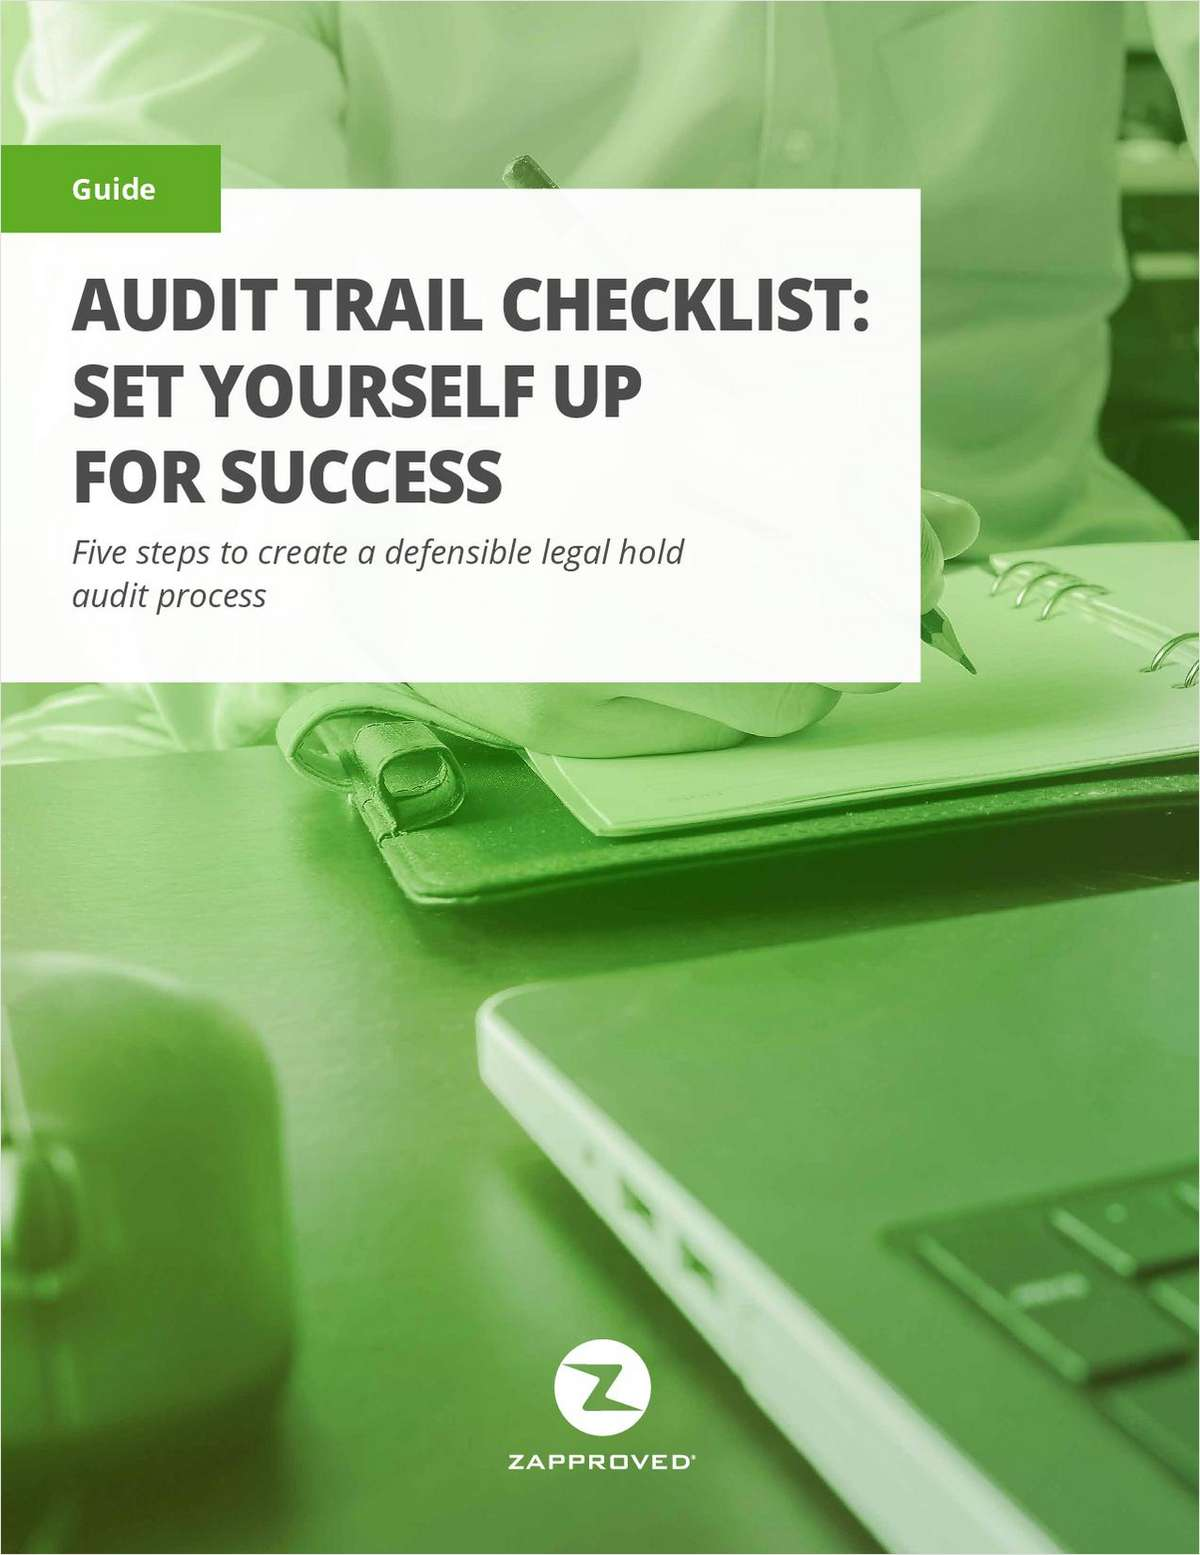 Audit Trail Checklist: Five Simple Steps to Create a Defensible Legal Hold Audit Process